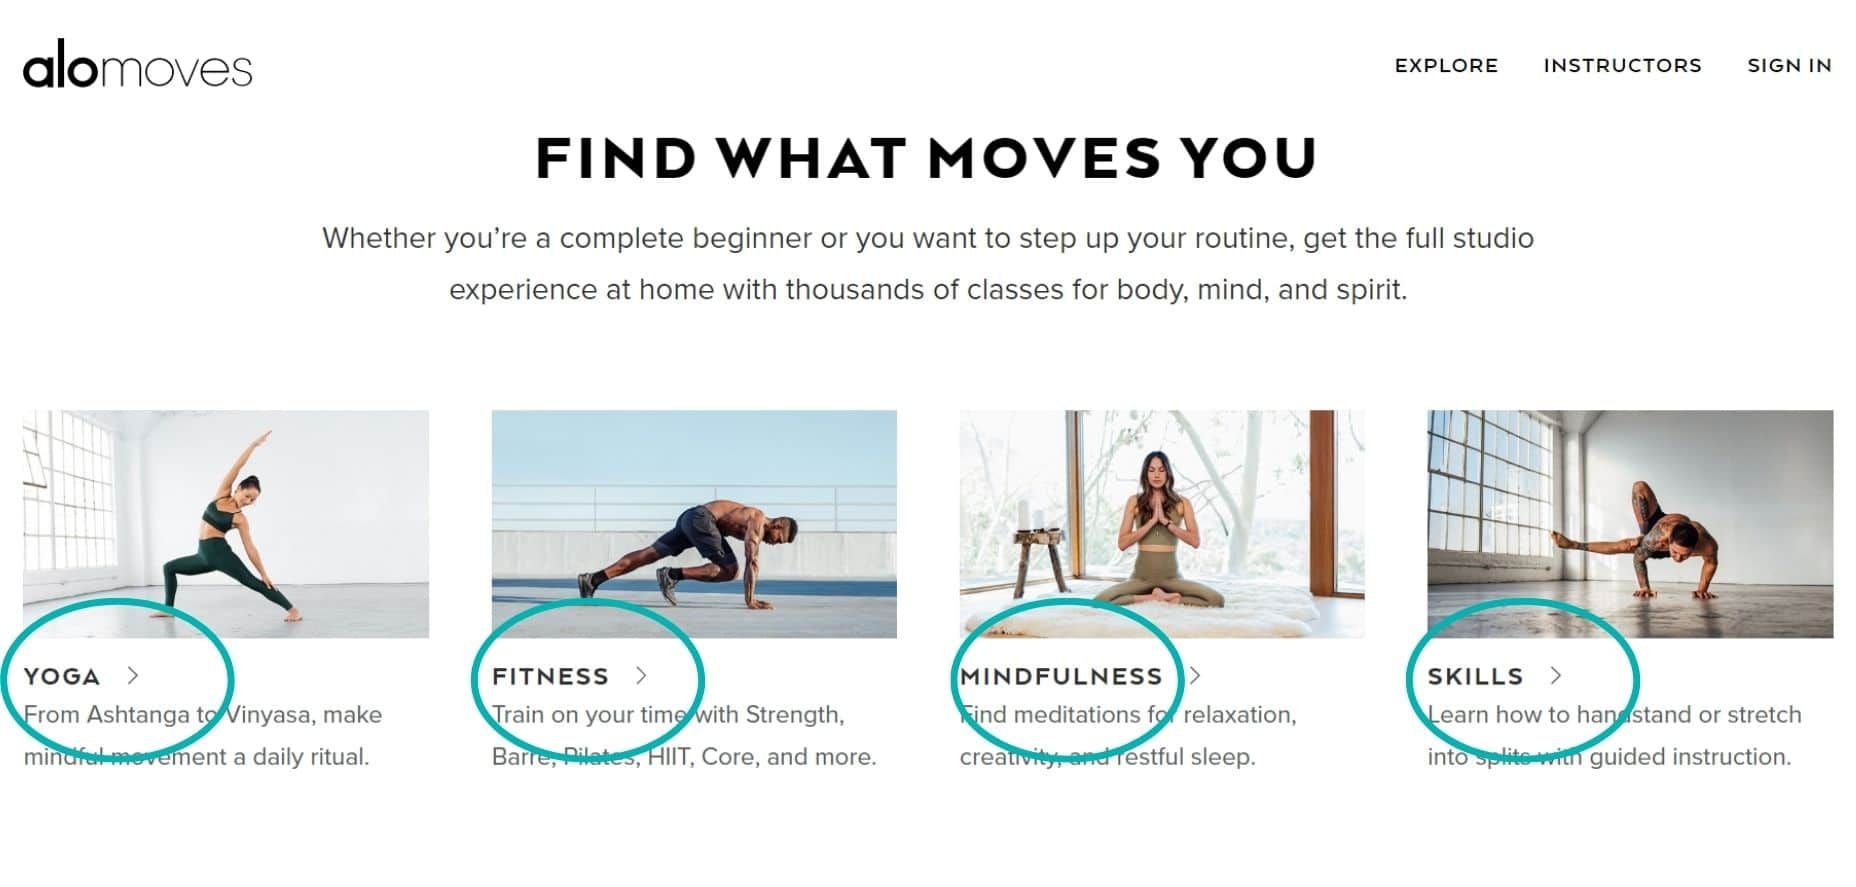 Our Alo Moves review covers all of the fitness classes found on Alo Moves including Barre, Hiit, Meditation, Mindfulness and Yoga. Alo Moves has online workouts for everyone with the world's best teachers including Ashley Galvin, Dylan Werner, Briohny Smyth, Adrienne Kimberley, Patrick Beach and many more famous yoga teachers.